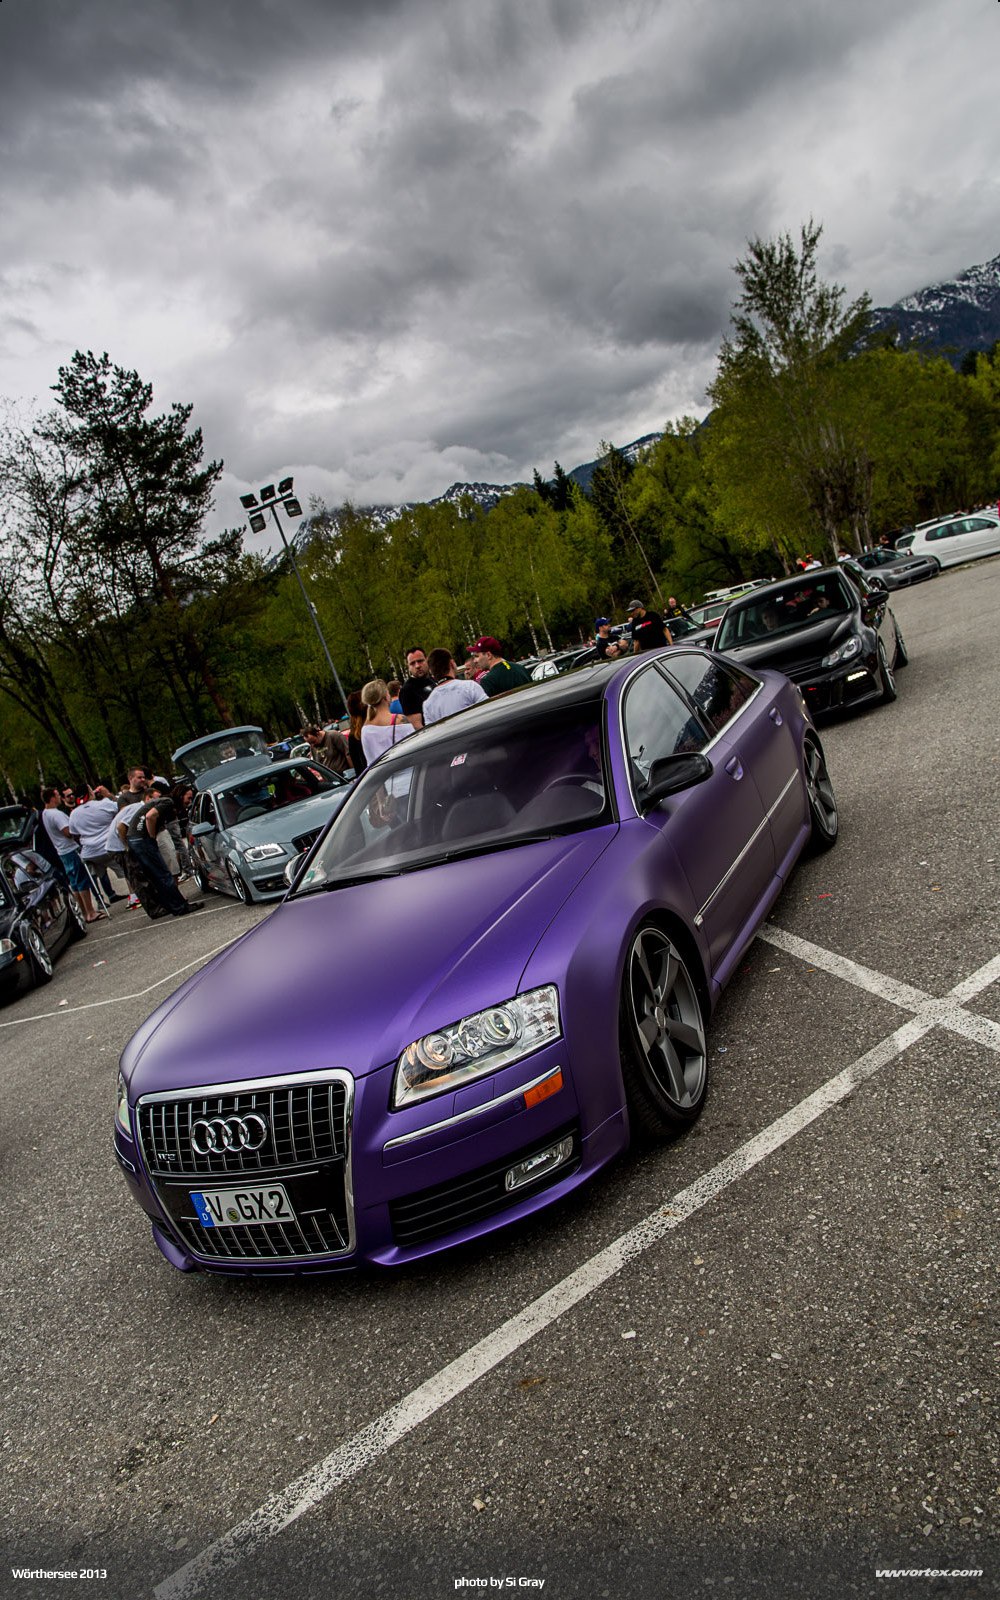 worthersee-2013-gallery-si-gray-047